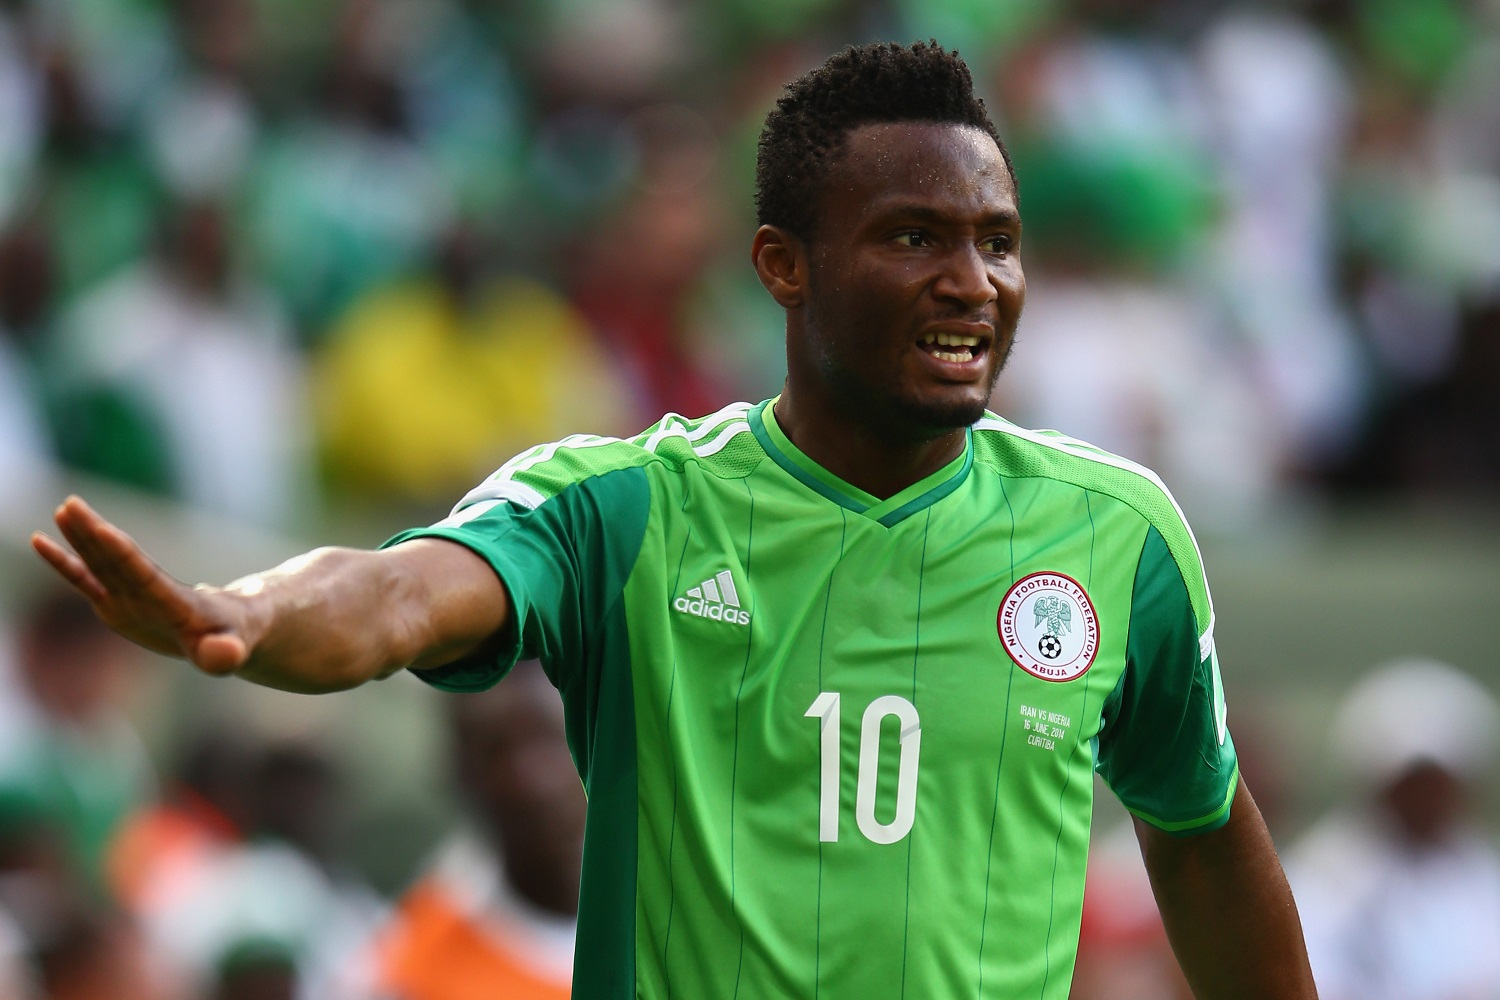 CURITIBA, BRAZIL - JUNE 16: John Obi Mikel of Nigeria gestures during the 2014 FIFA World Cup Brazil Group F match between Iran and Nigeria at Arena da Baixada on June 16, 2014 in Curitiba, Brazil.  (Photo by Julian Finney/Getty Images)